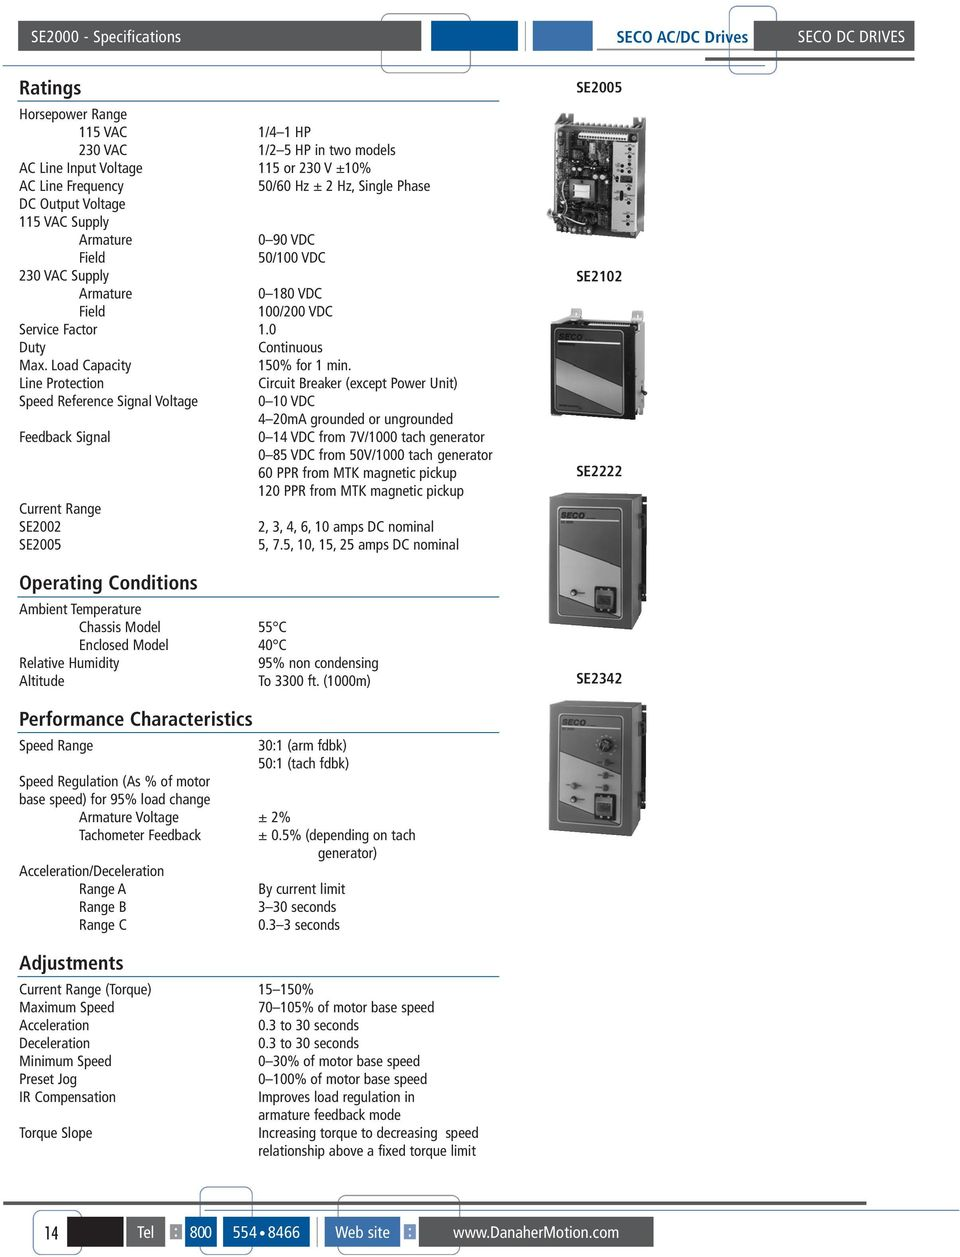 August Seco Dc Drives Table Of Contents Pdf To Ac Generator Wiring Diagram Tachometer Line Protection Circuit Breaker Except Power Unit Speed Reference Signal Voltage 0 Vdc